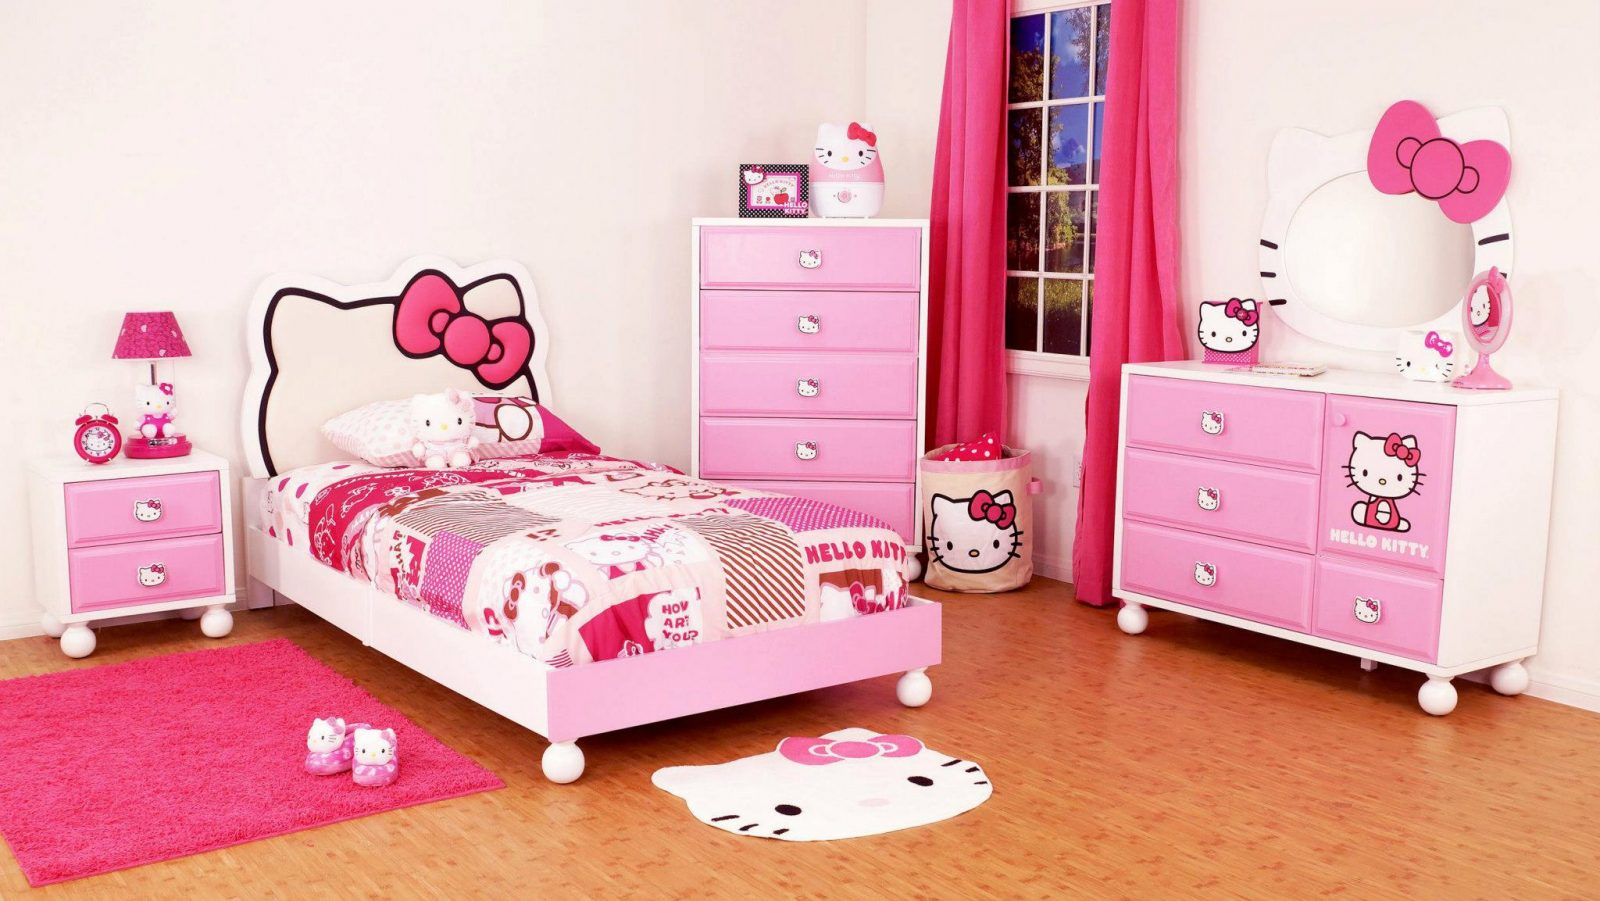 Habitaci n de hello kitty para ni as im genes y fotos for Dormitorios infantiles para ninas